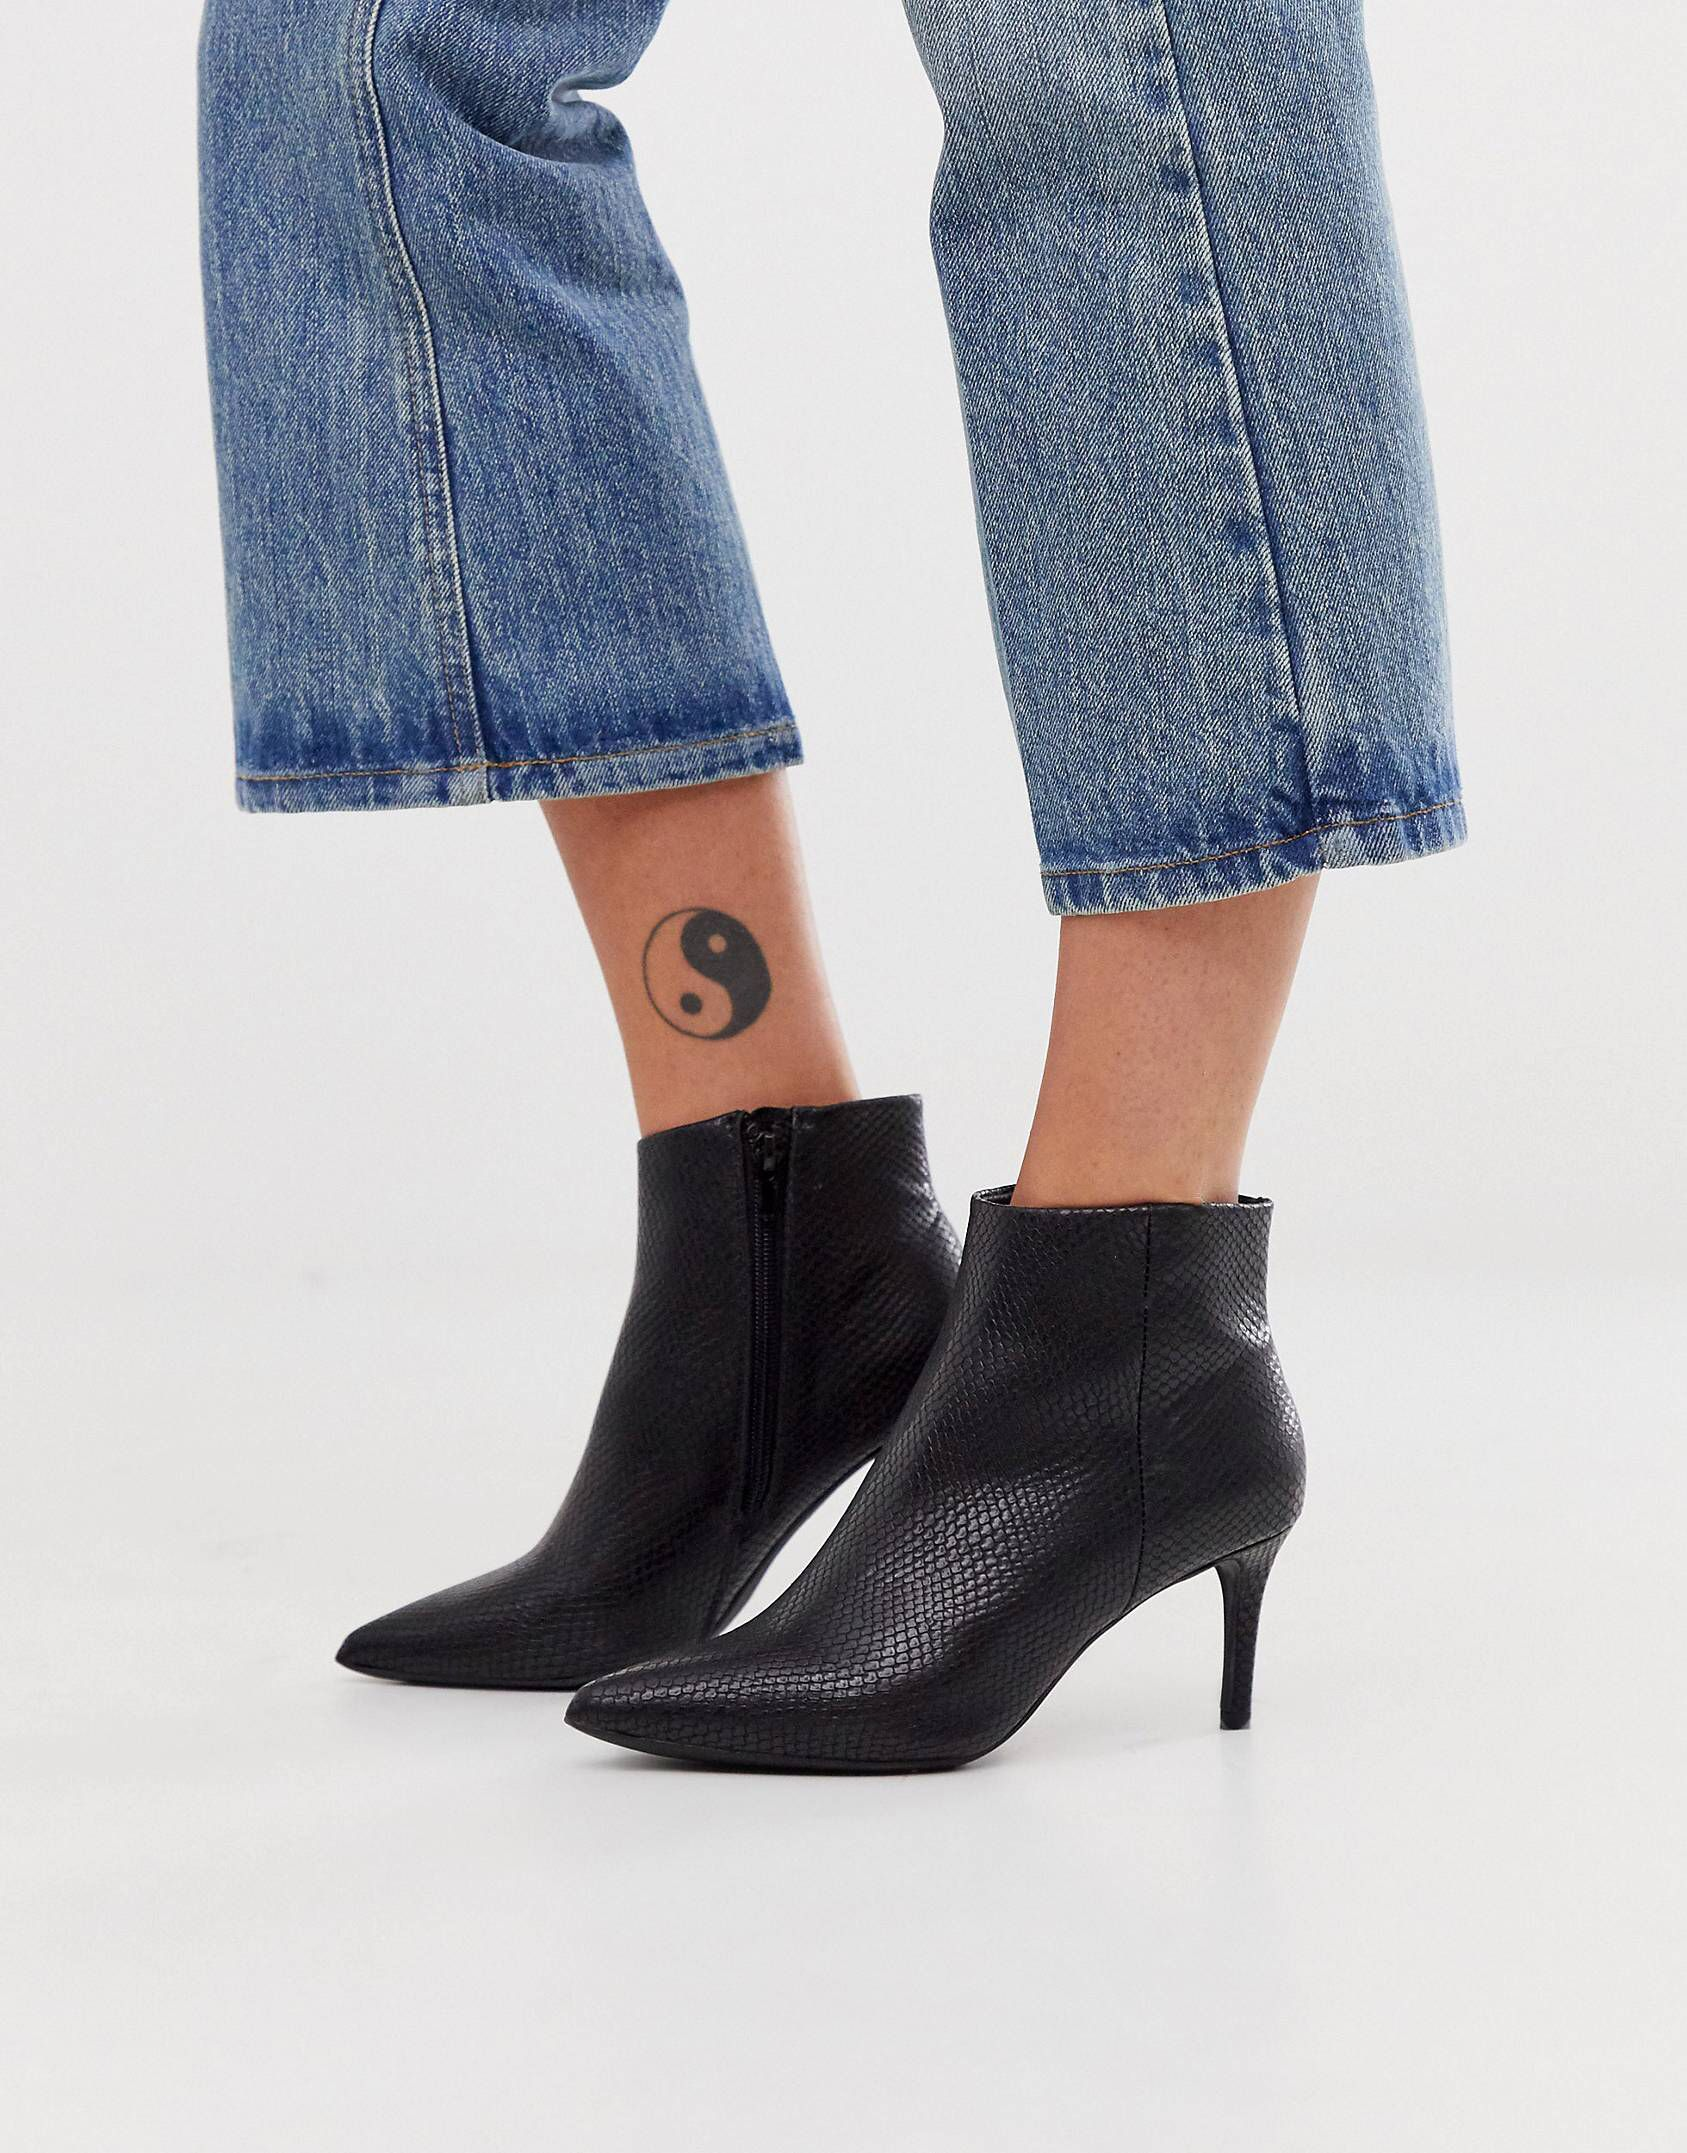 Pin By Cartergirl City On Wear Kitten Heel Boots Boots Heeled Boots